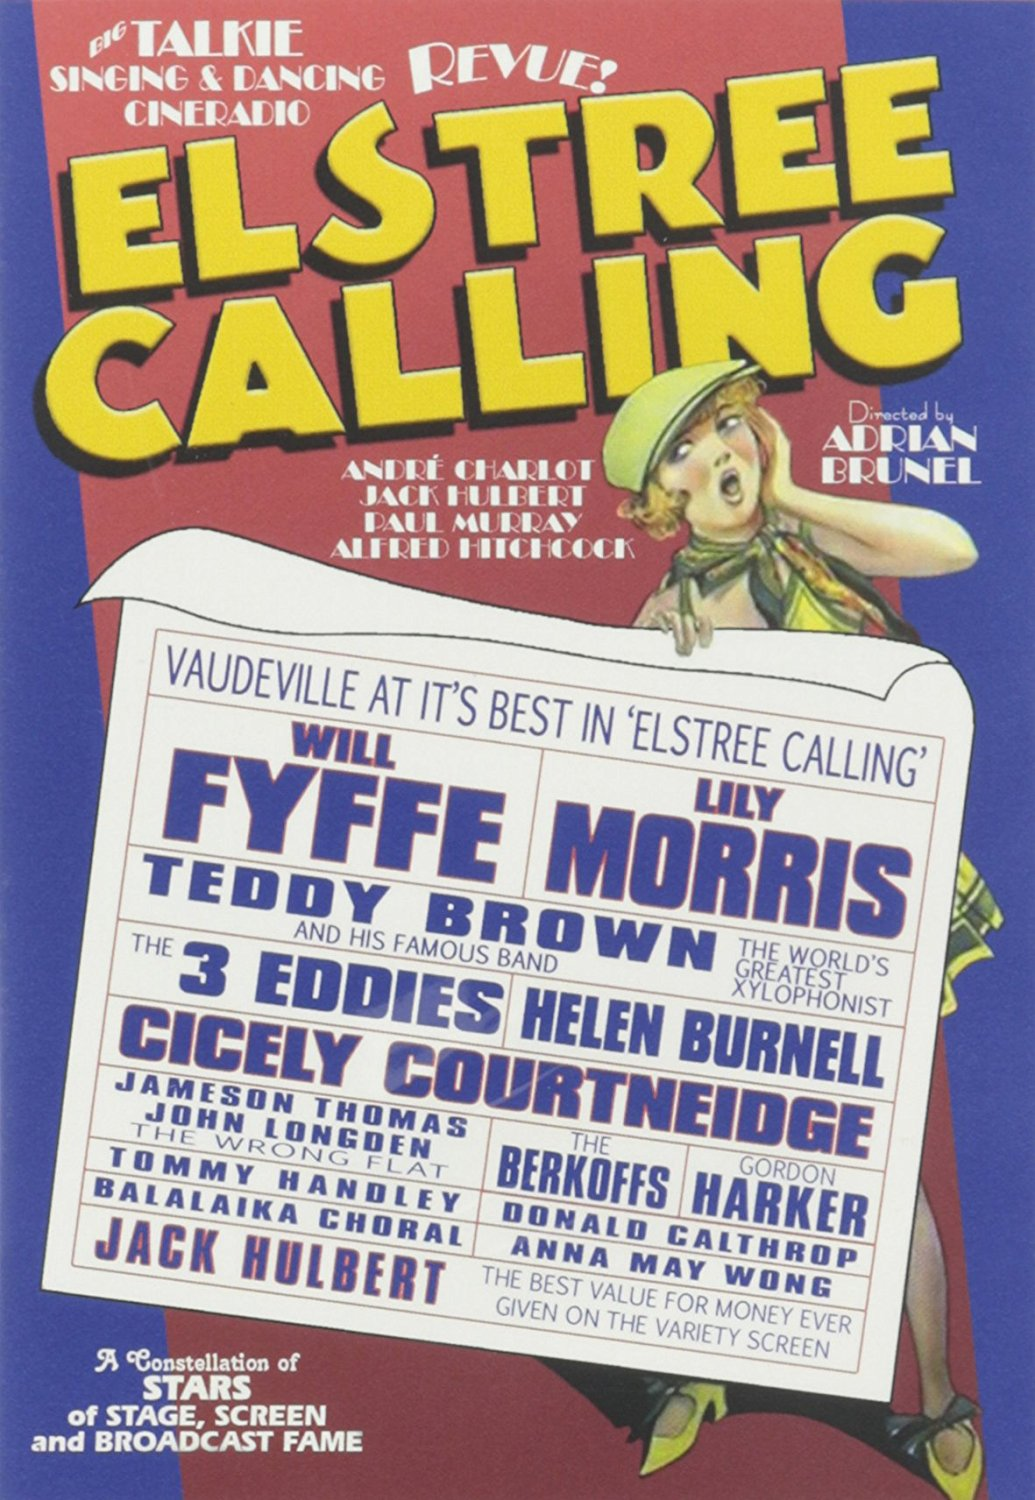 Elstree Calling (1930, part-dir. Alfred Hitchcock) UK poster